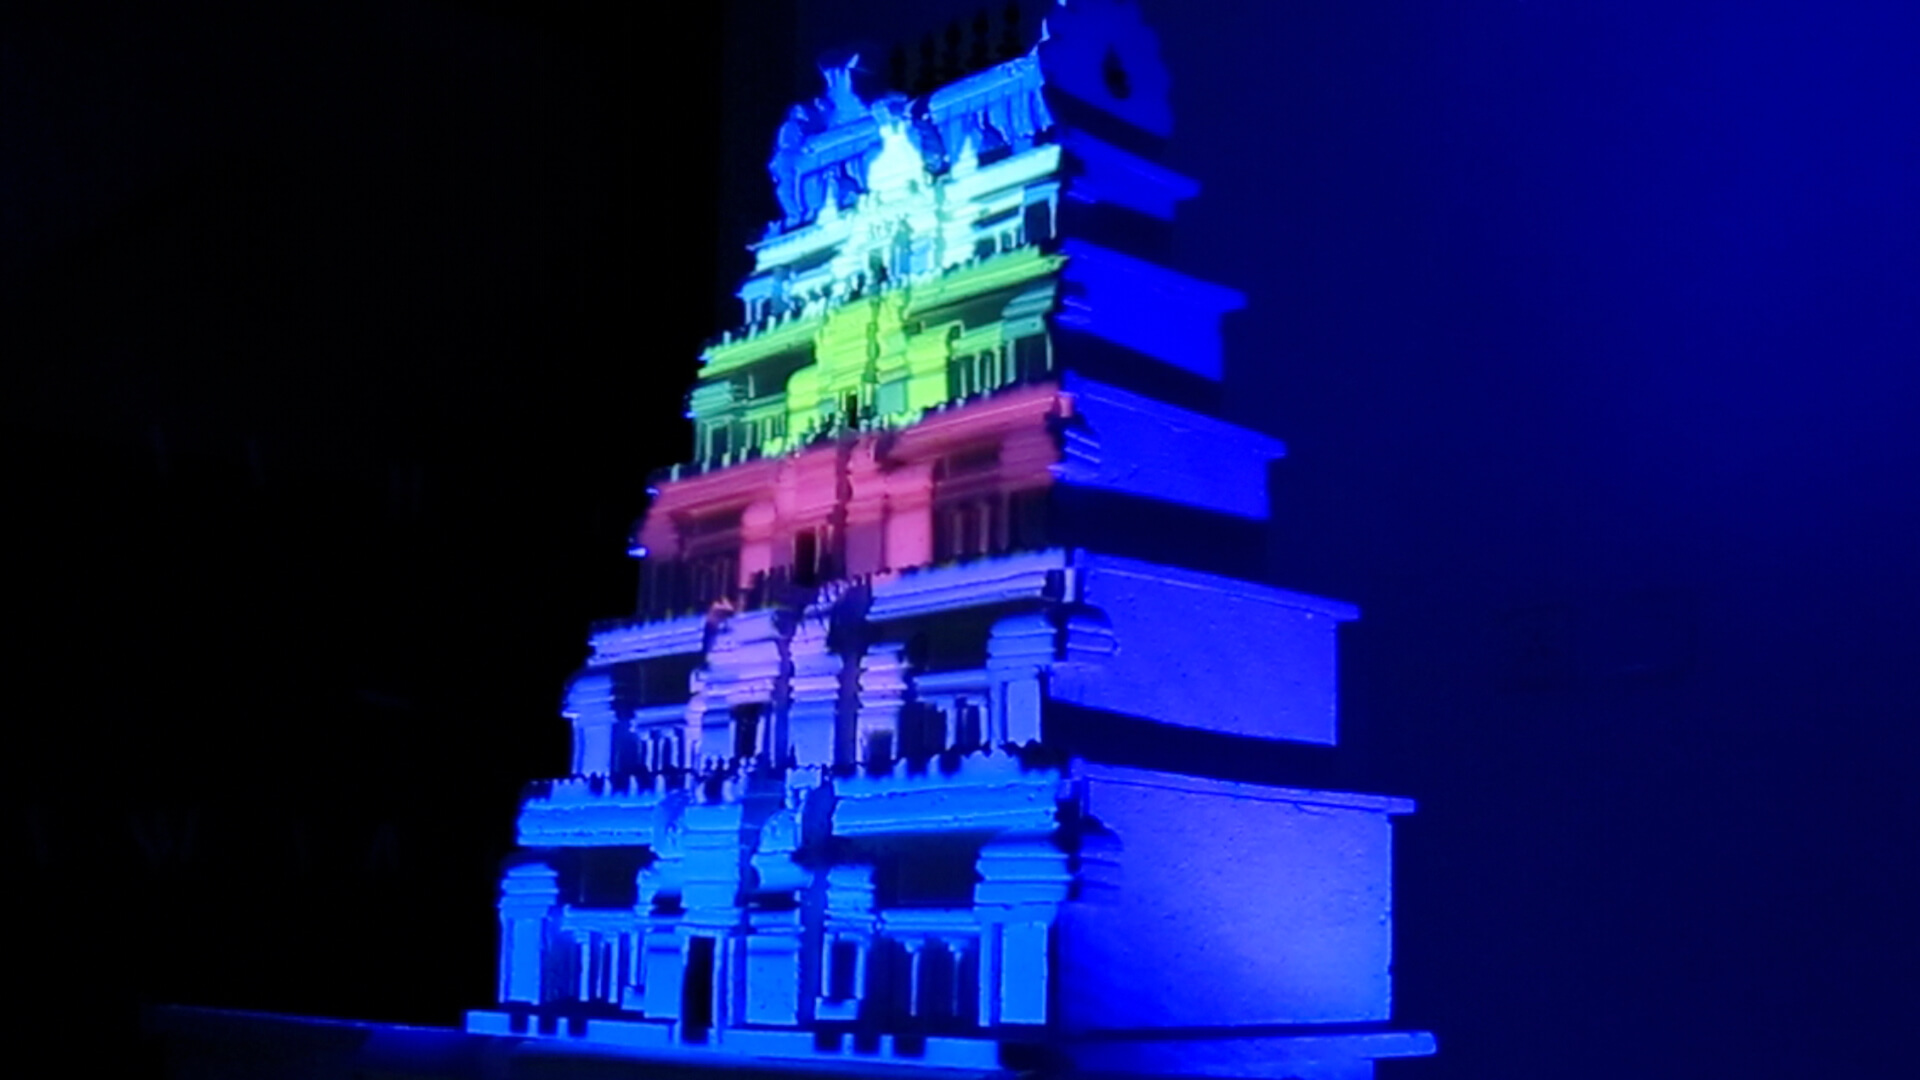 Projection mapping, video mapping, immersive experience, srushti creative